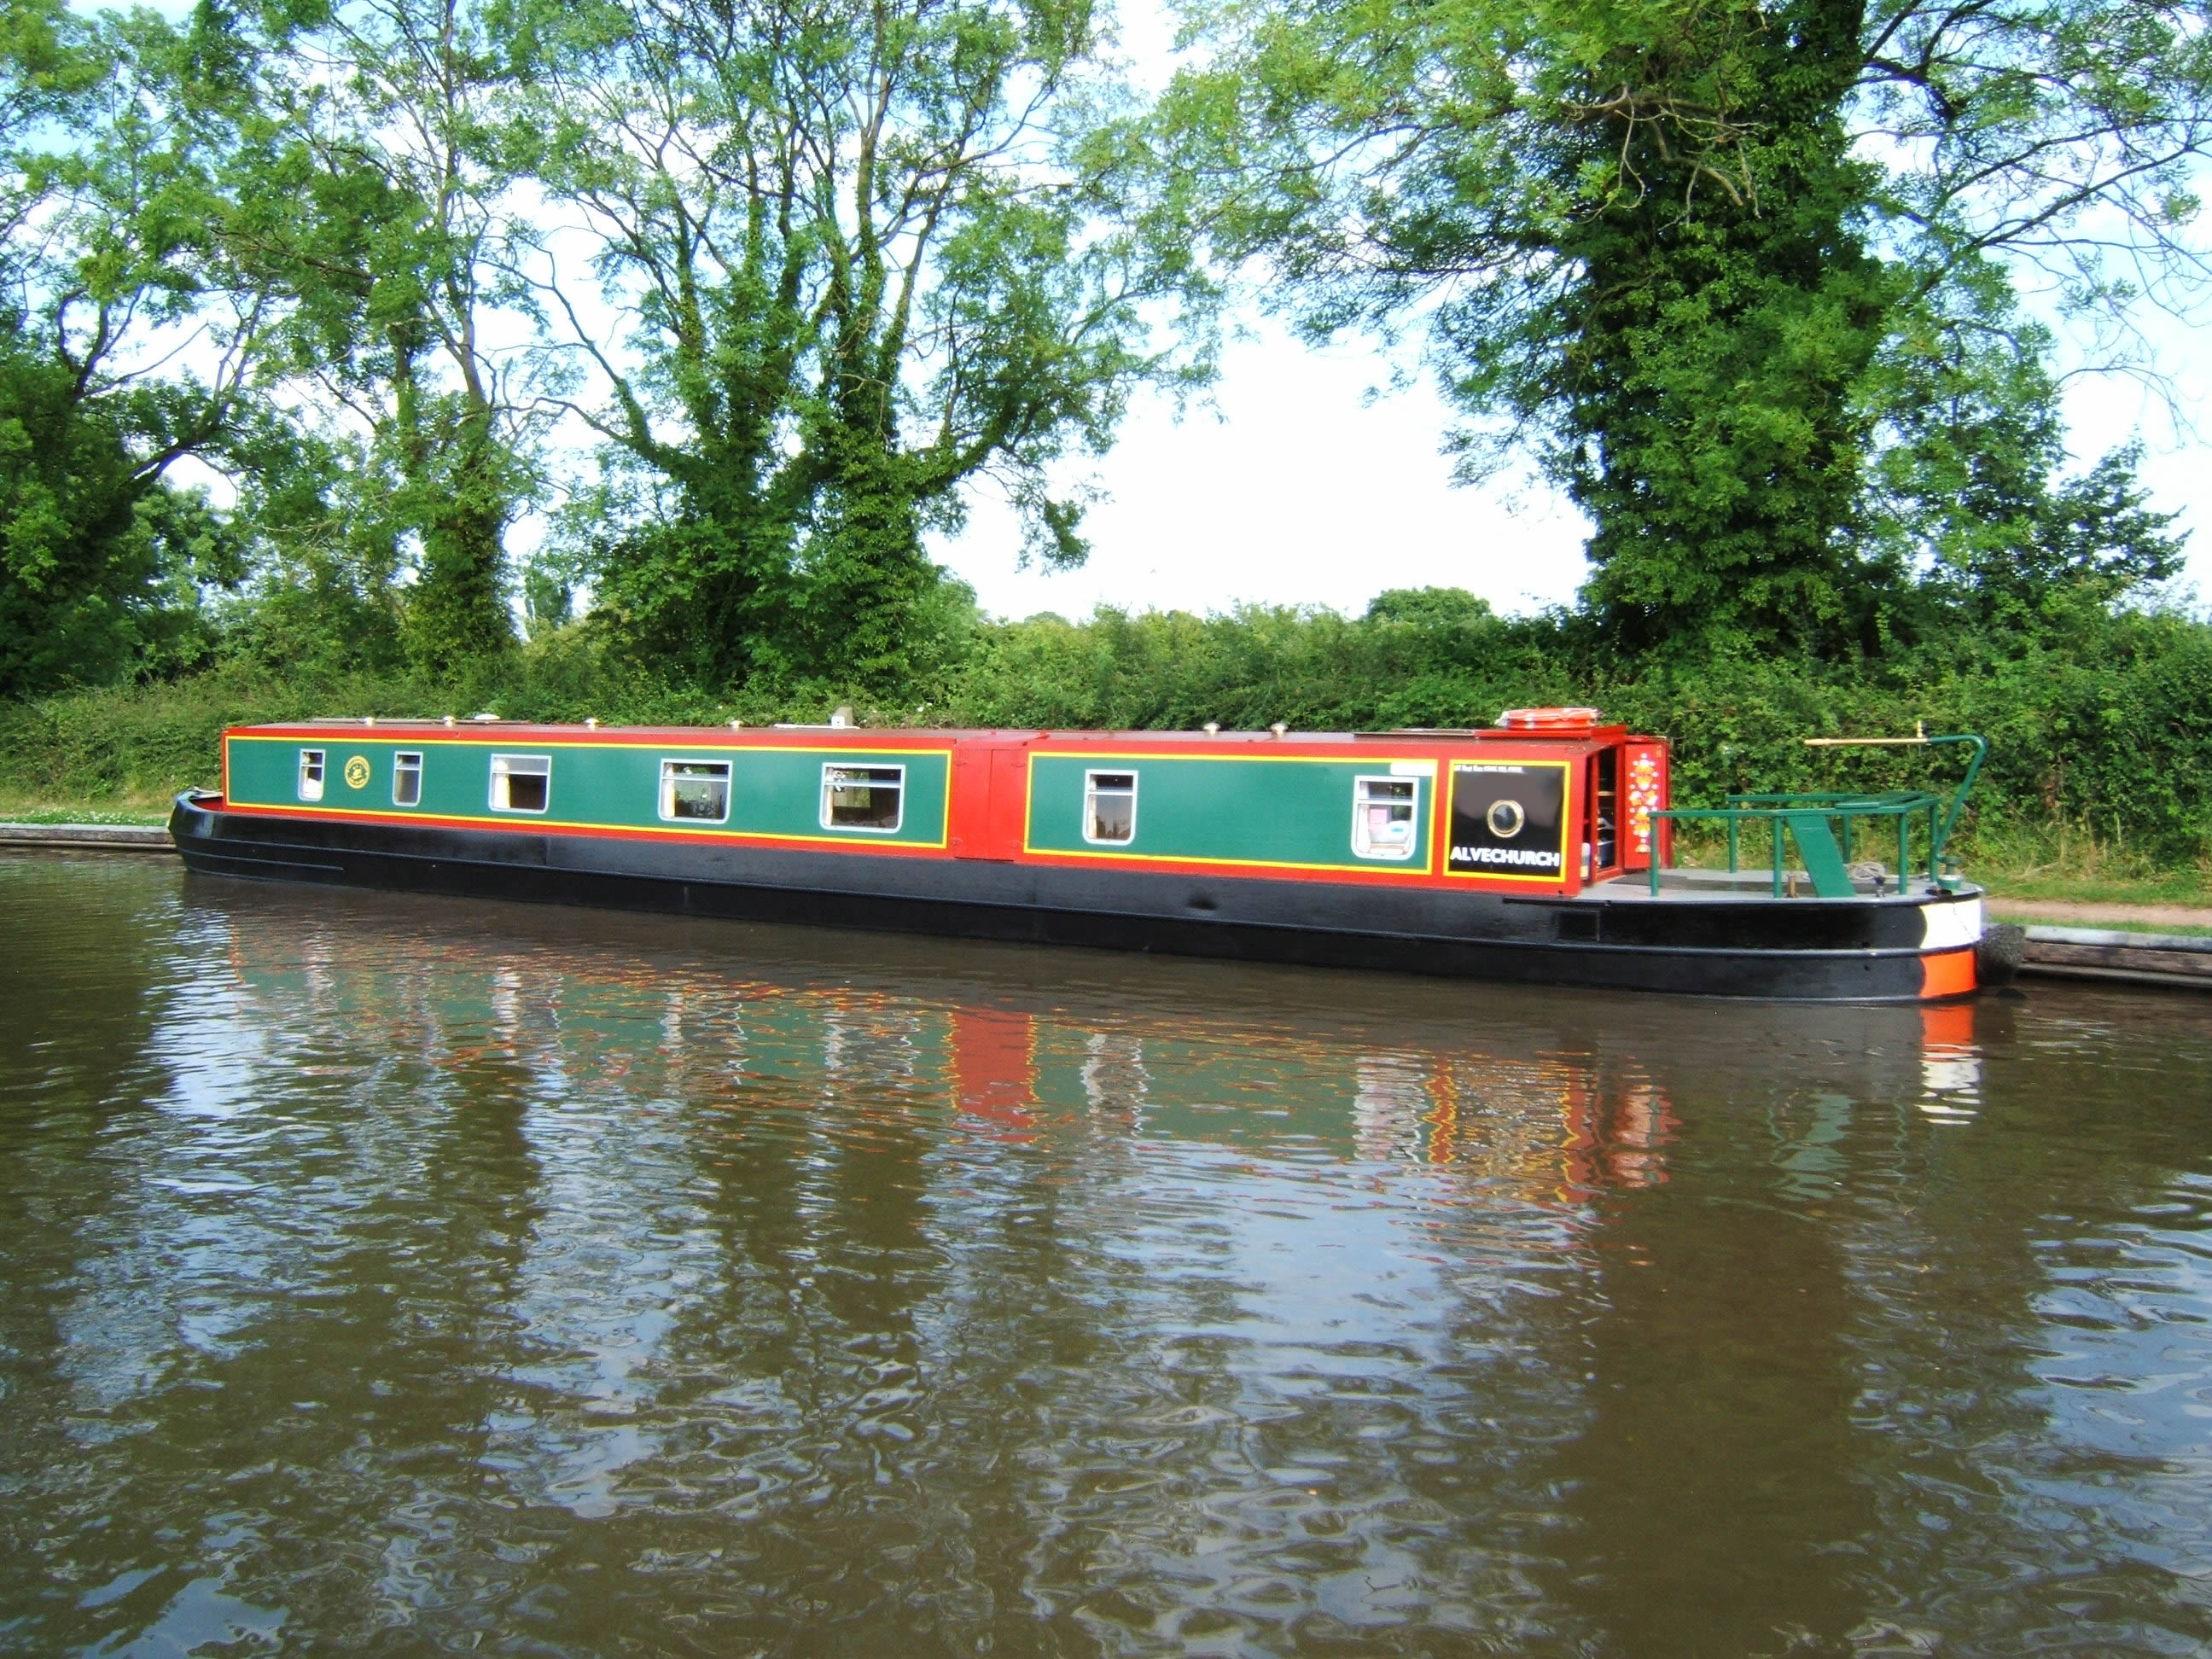 The Swan class canal boat